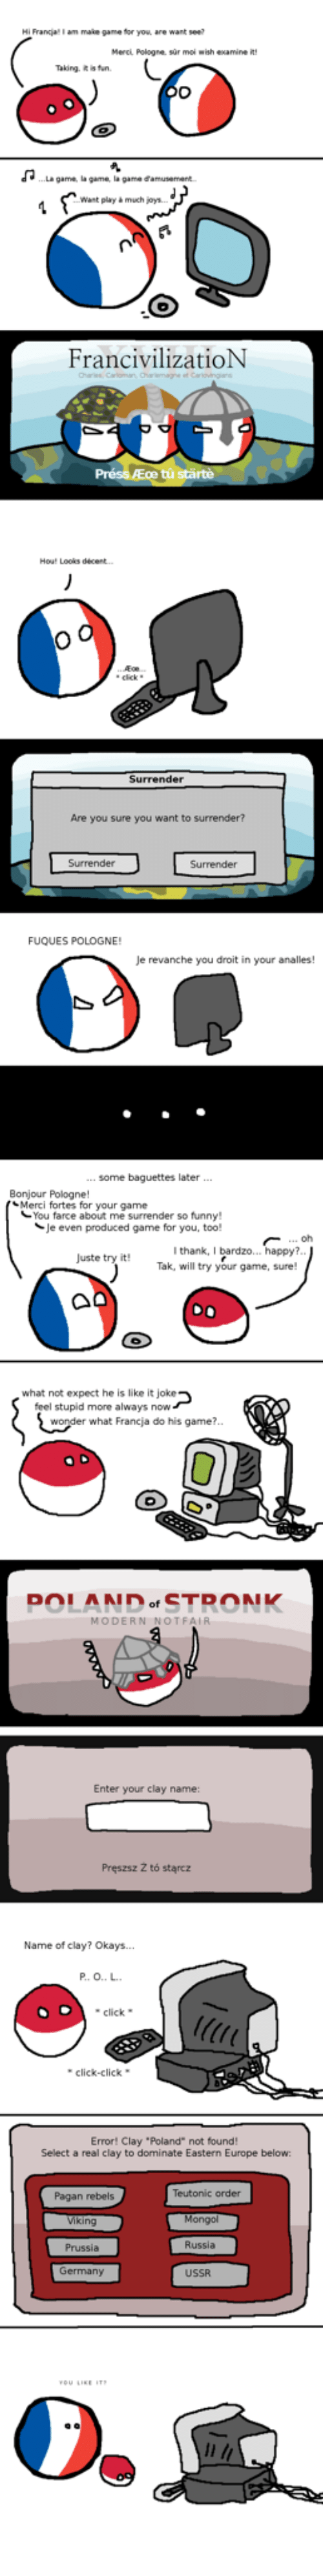 """Click, Funny, and Europe: Hi Francjal I am mabe game for you are want see  Merci Pologne, sur moi wish examine it  ..La game, la game, la game Camusement  Want playàmuch joy.  FrancivilizatioN  Surrender  Are you sure you want to surrender?  FUQUES POLOGNE  Je revanche you droit in your analles!  some baguettes later...  Bonjour Pologne  Merci fortes for your game  You farce about me surrender so funny!  Je even produced game for you, too  oh  thank, I bardzo... appy?  Tak, will try your game, sure  Juste try it!  what not expect he is like it joke  feel stupid more always now  r what Francja do his game?  OLAND  MODERN NOTFAIR  Enter your clay name:  Pręszsz Z tó stąrcz  Name of clay? Okays.  click  click-click  Error! Clay """"Poland"""" not found  Select a real clay to dominate Eastern Europe below  Teutonic order  Pagan rebels  king  Prussia  Germany  Mongol  Russia  USSR"""